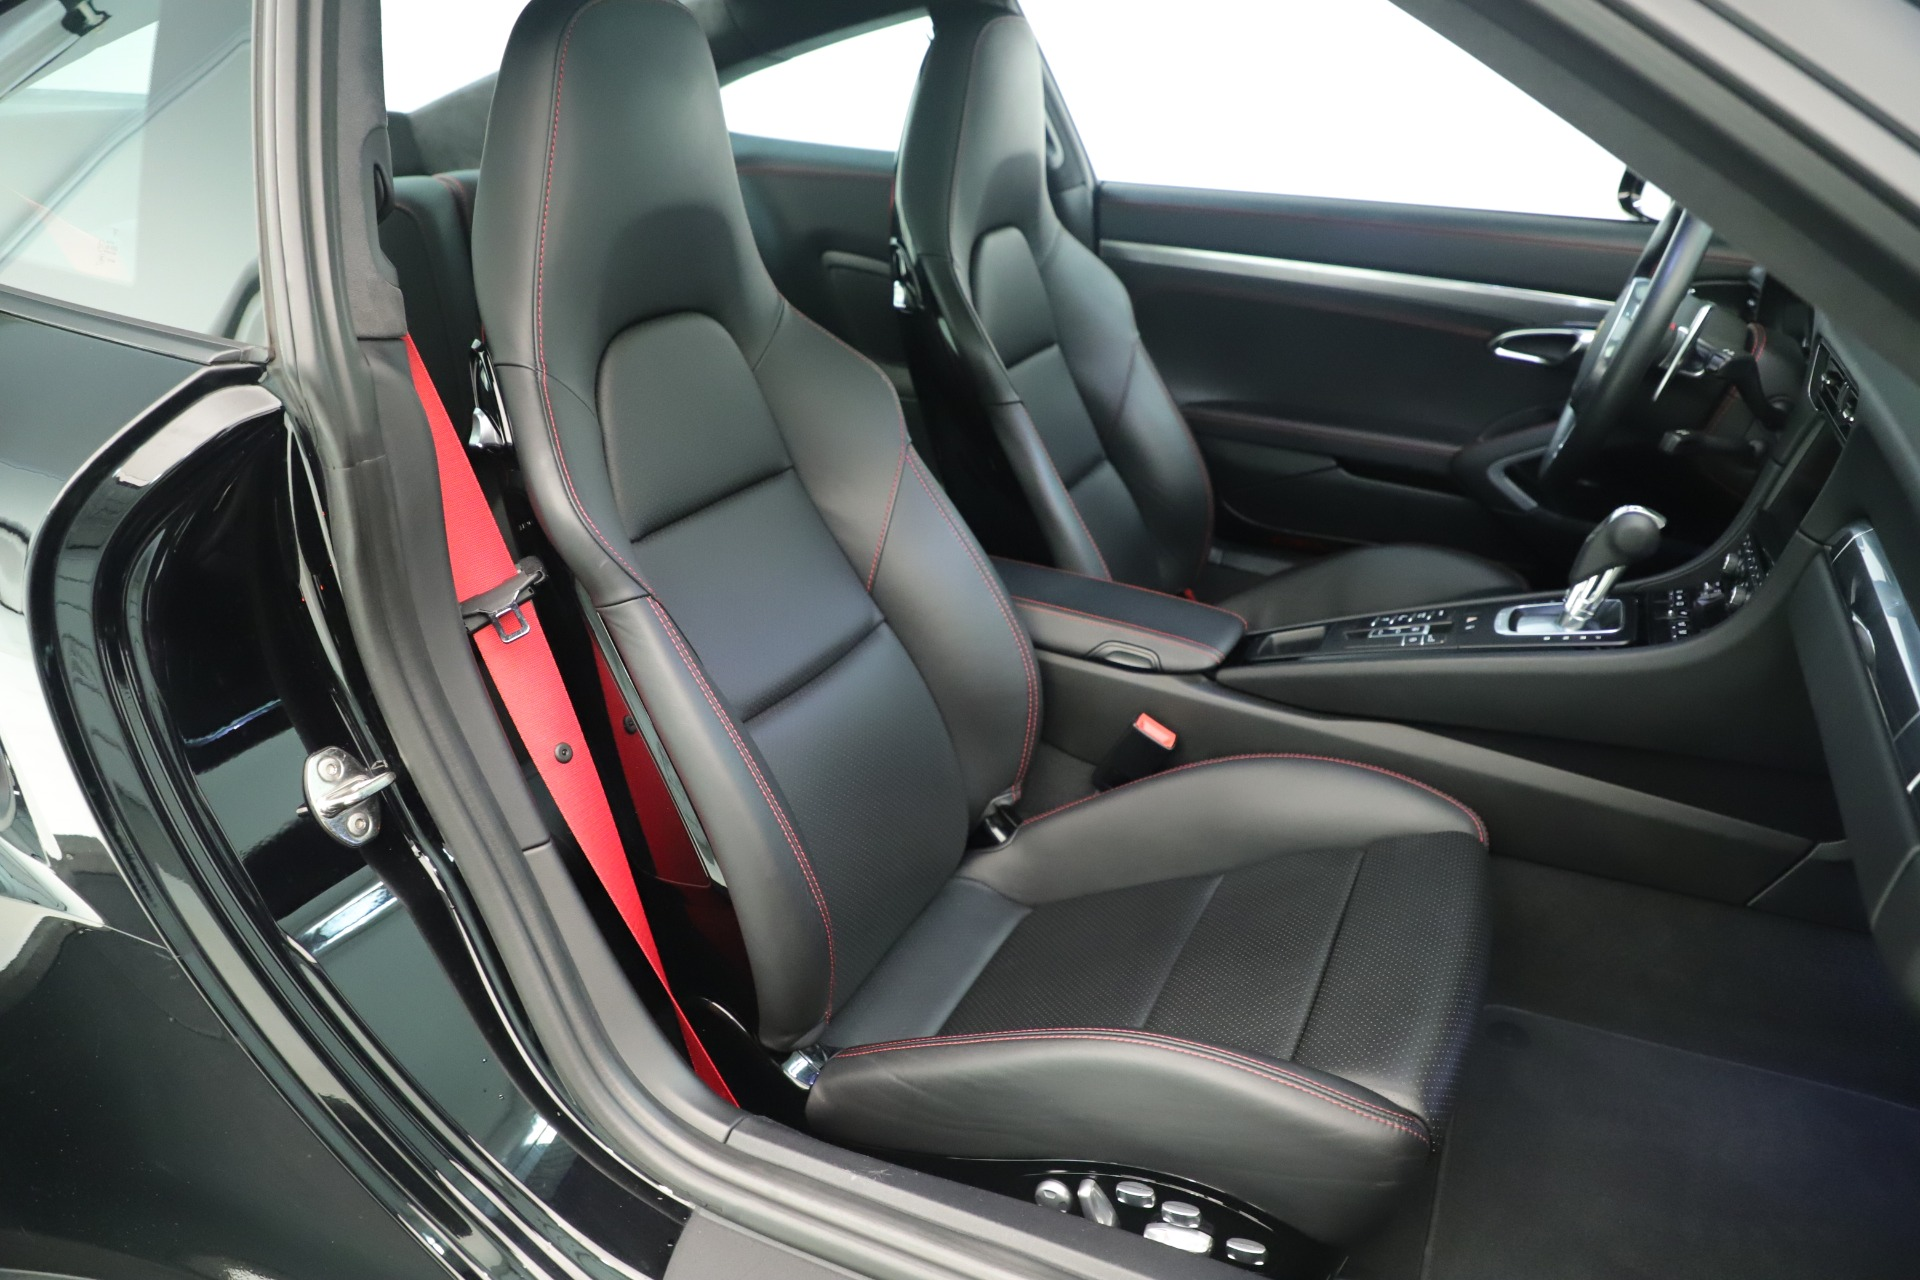 Used 2014 Porsche 911 Turbo For Sale 105900 In Greenwich, CT